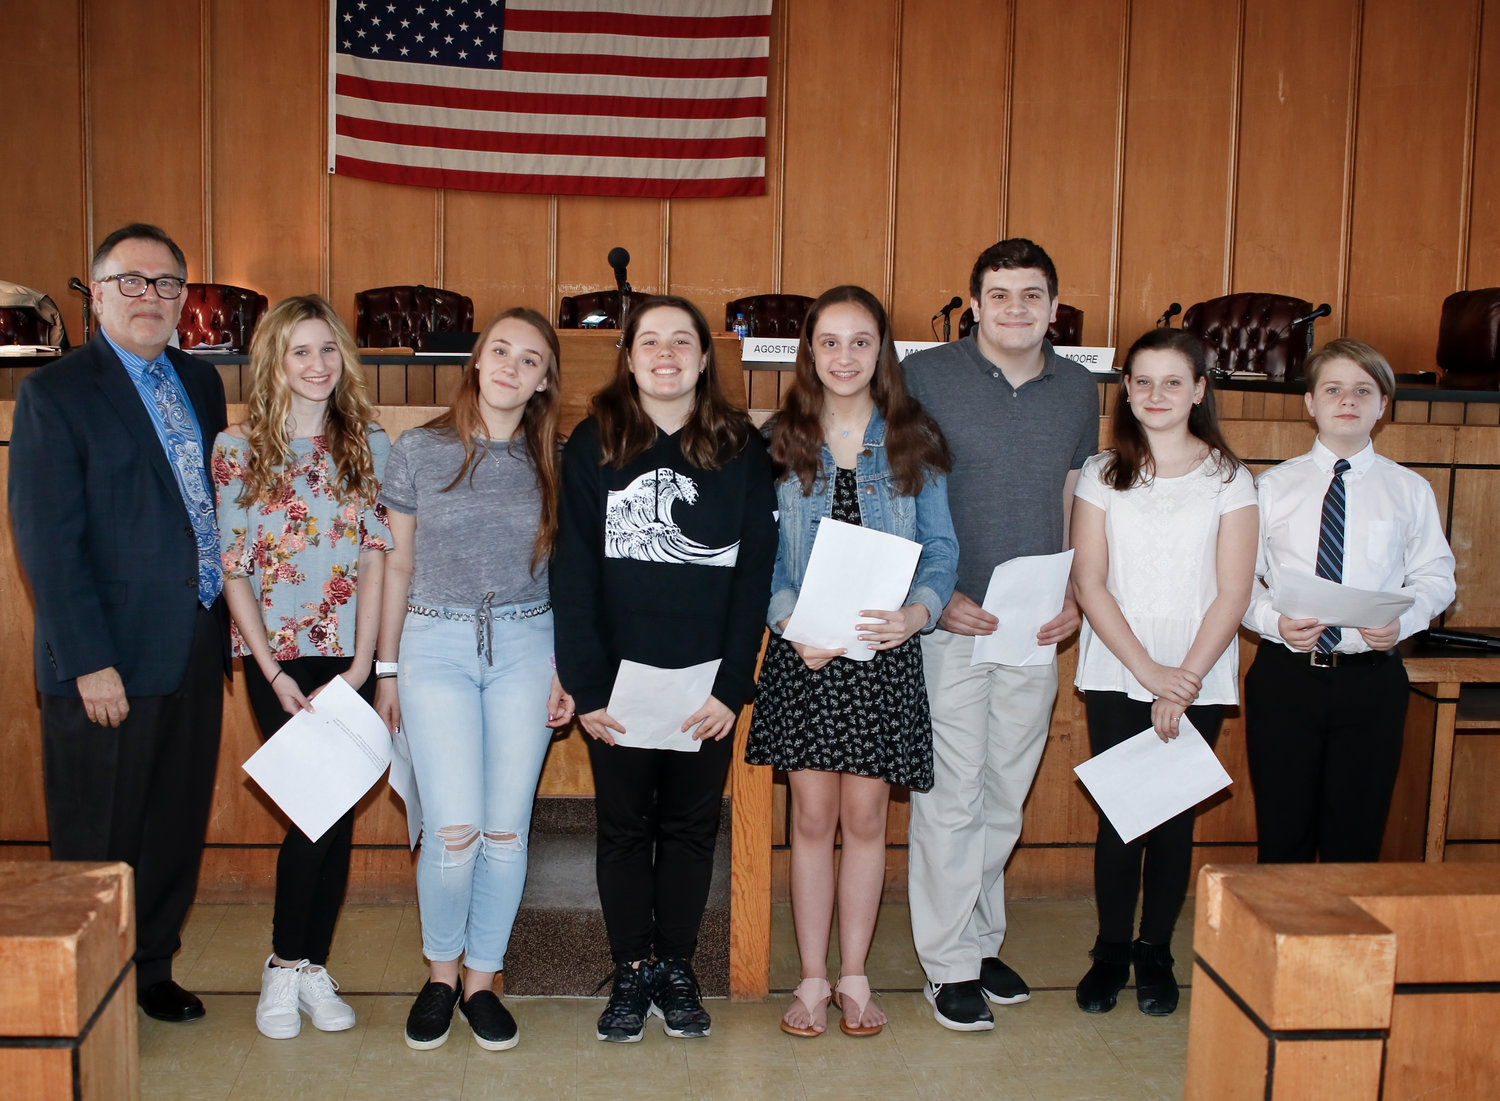 Temple Emanu-El also invited students to present quotes to the community from Elie Wiesel, well-known author and Holocaust survivor, at Tuesday's City Council meeting.